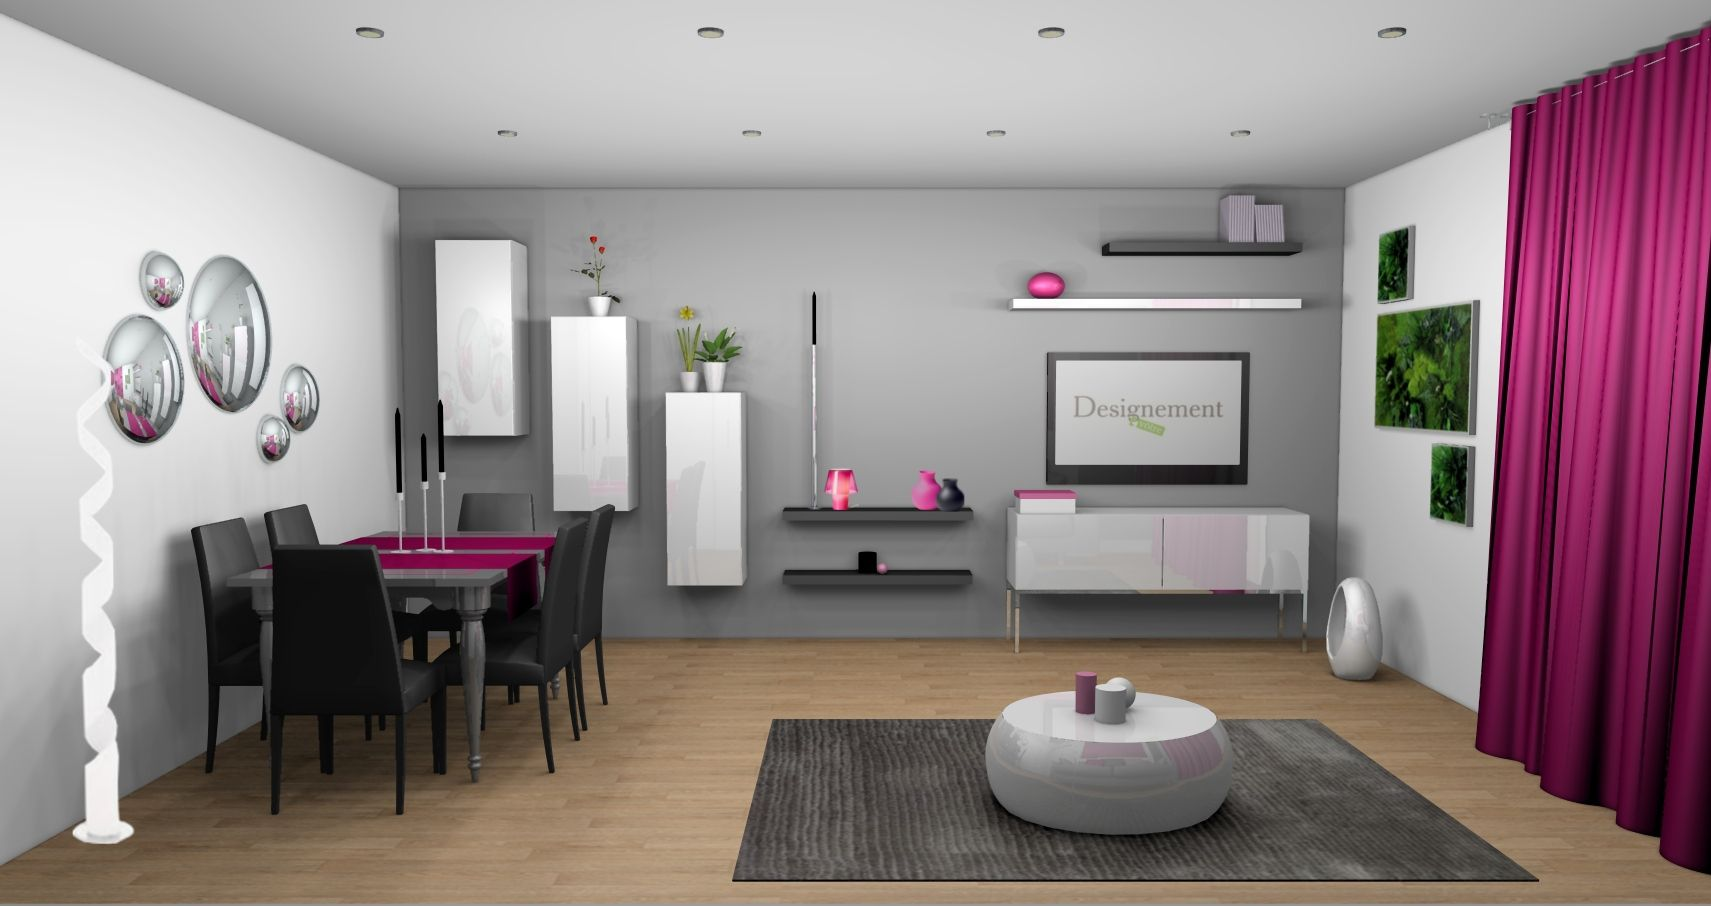 D co salon m r gris et blanc touche de couleur fushia - Deco salon design gris ...